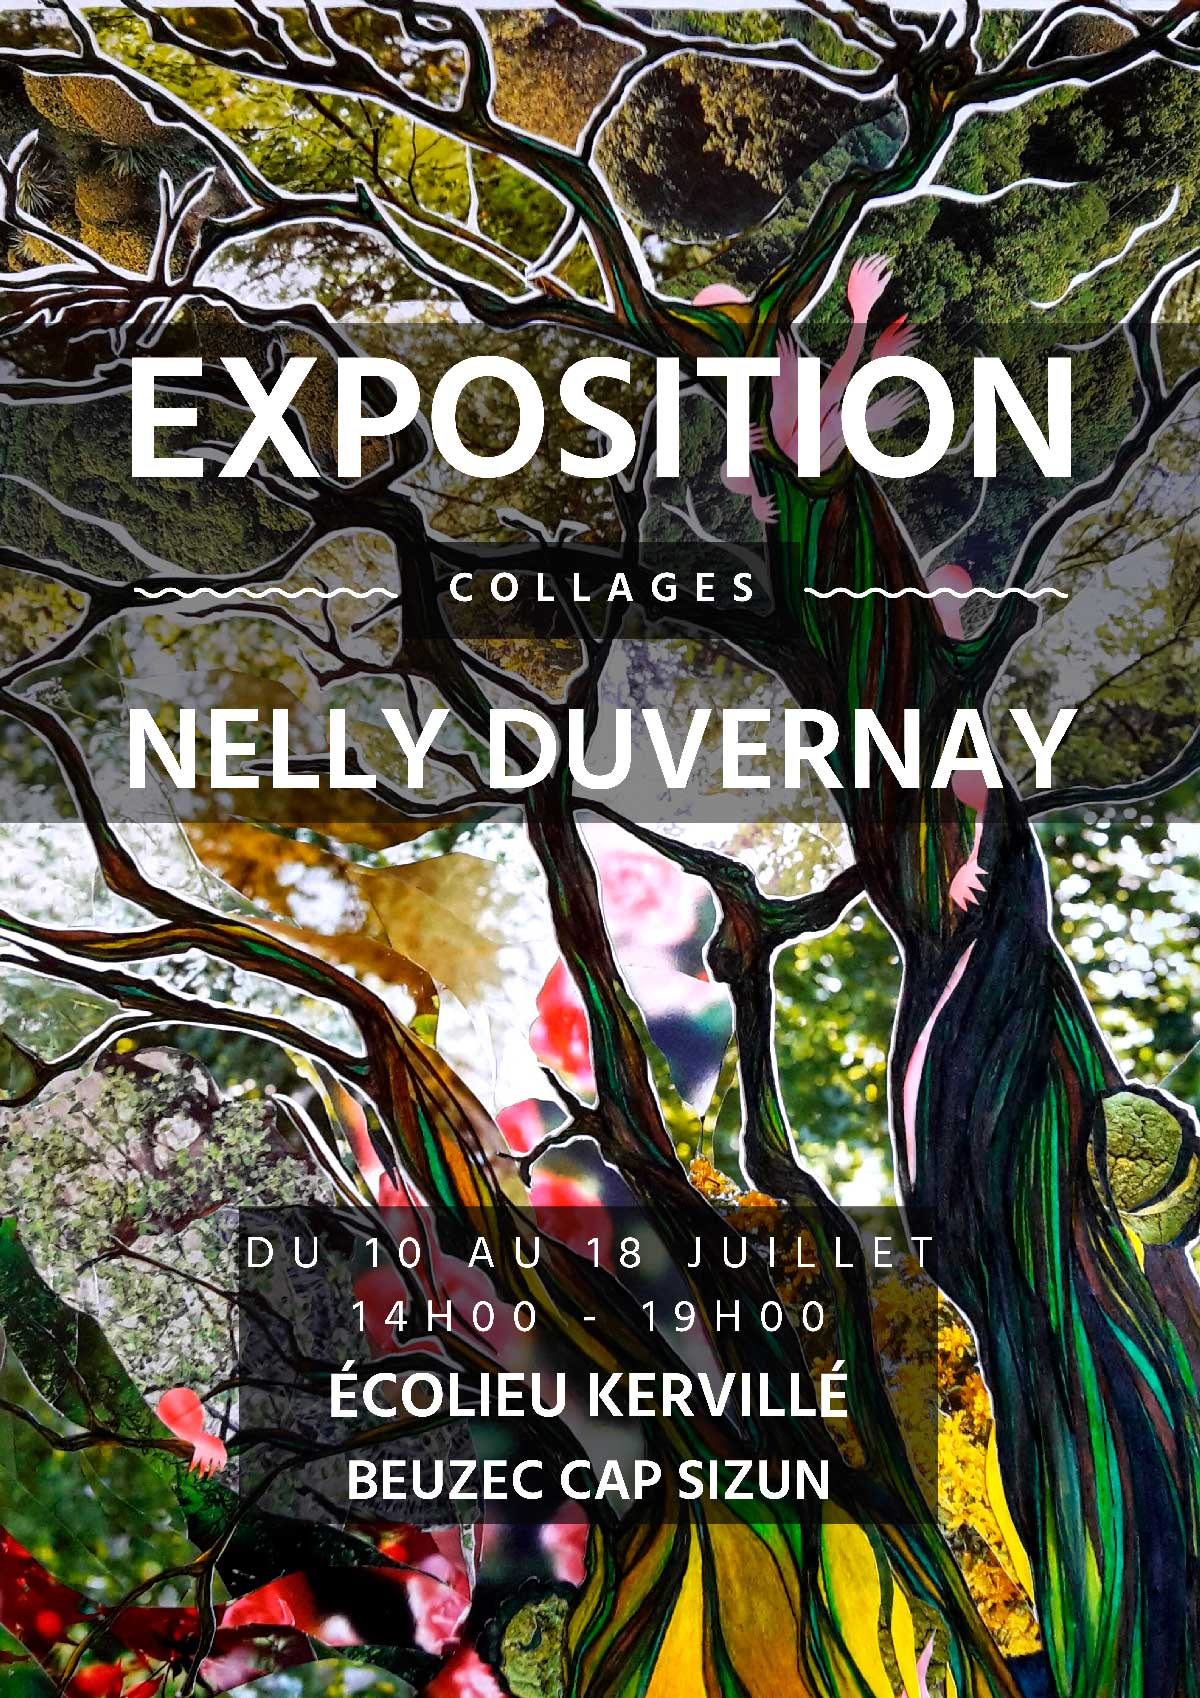 Exposition Nelly Duvernay